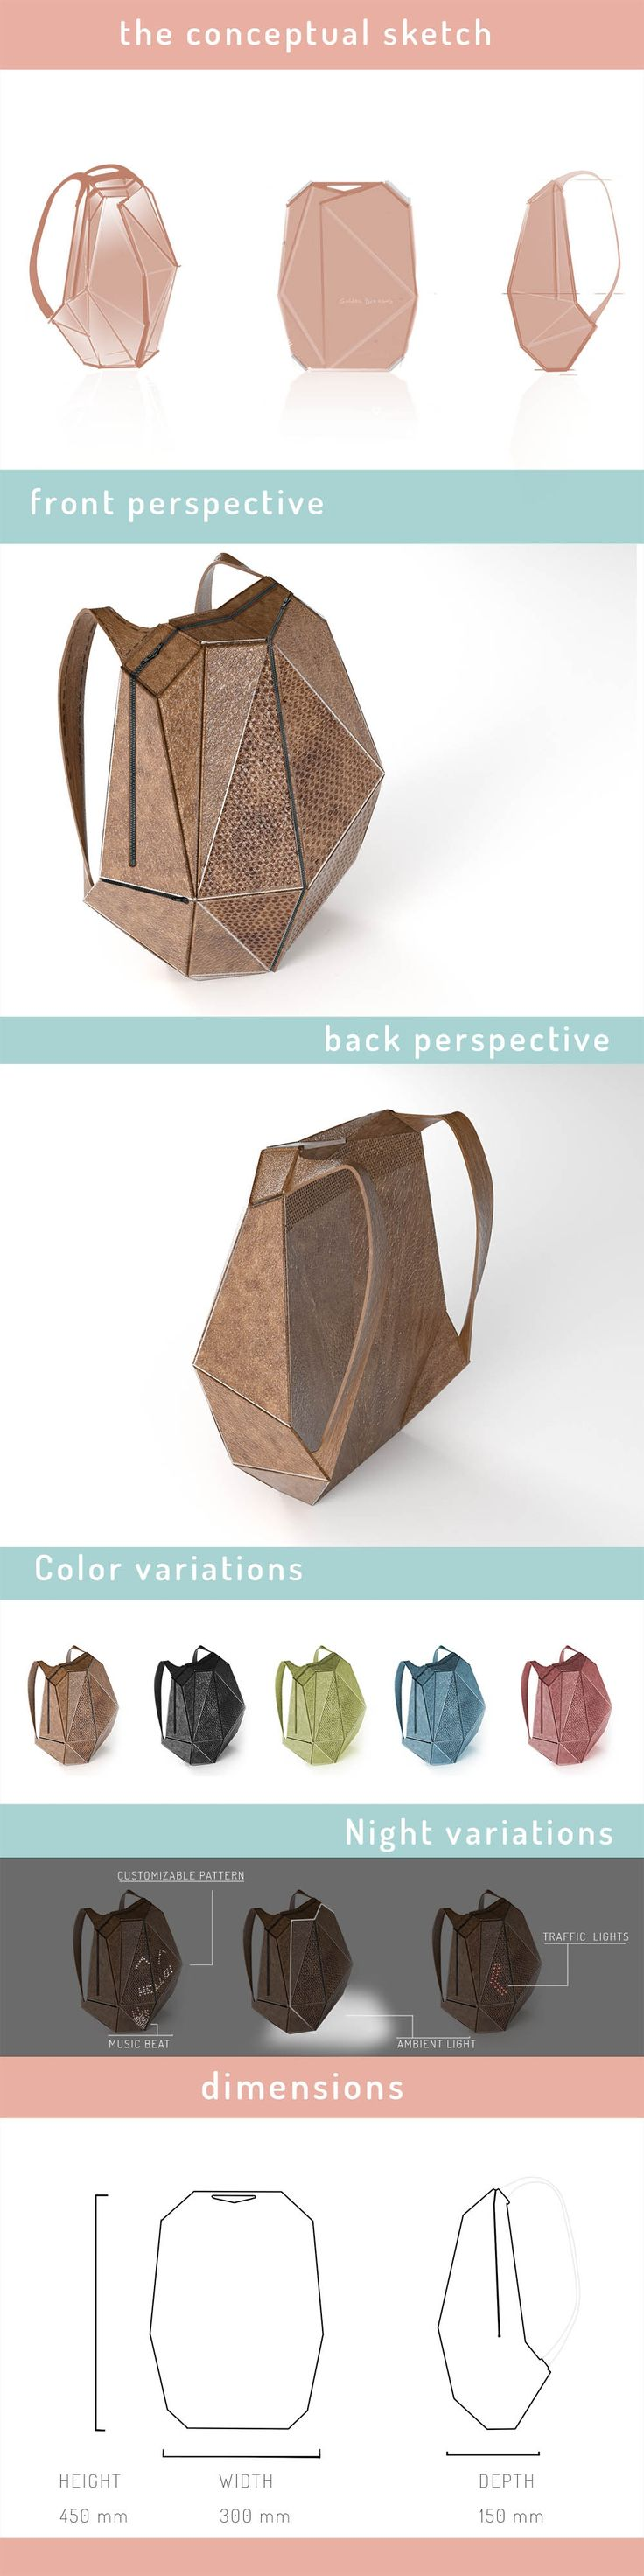 Designs | Create the backpack of the 21 century. The fusion between fashion and technology | Merchandise contest